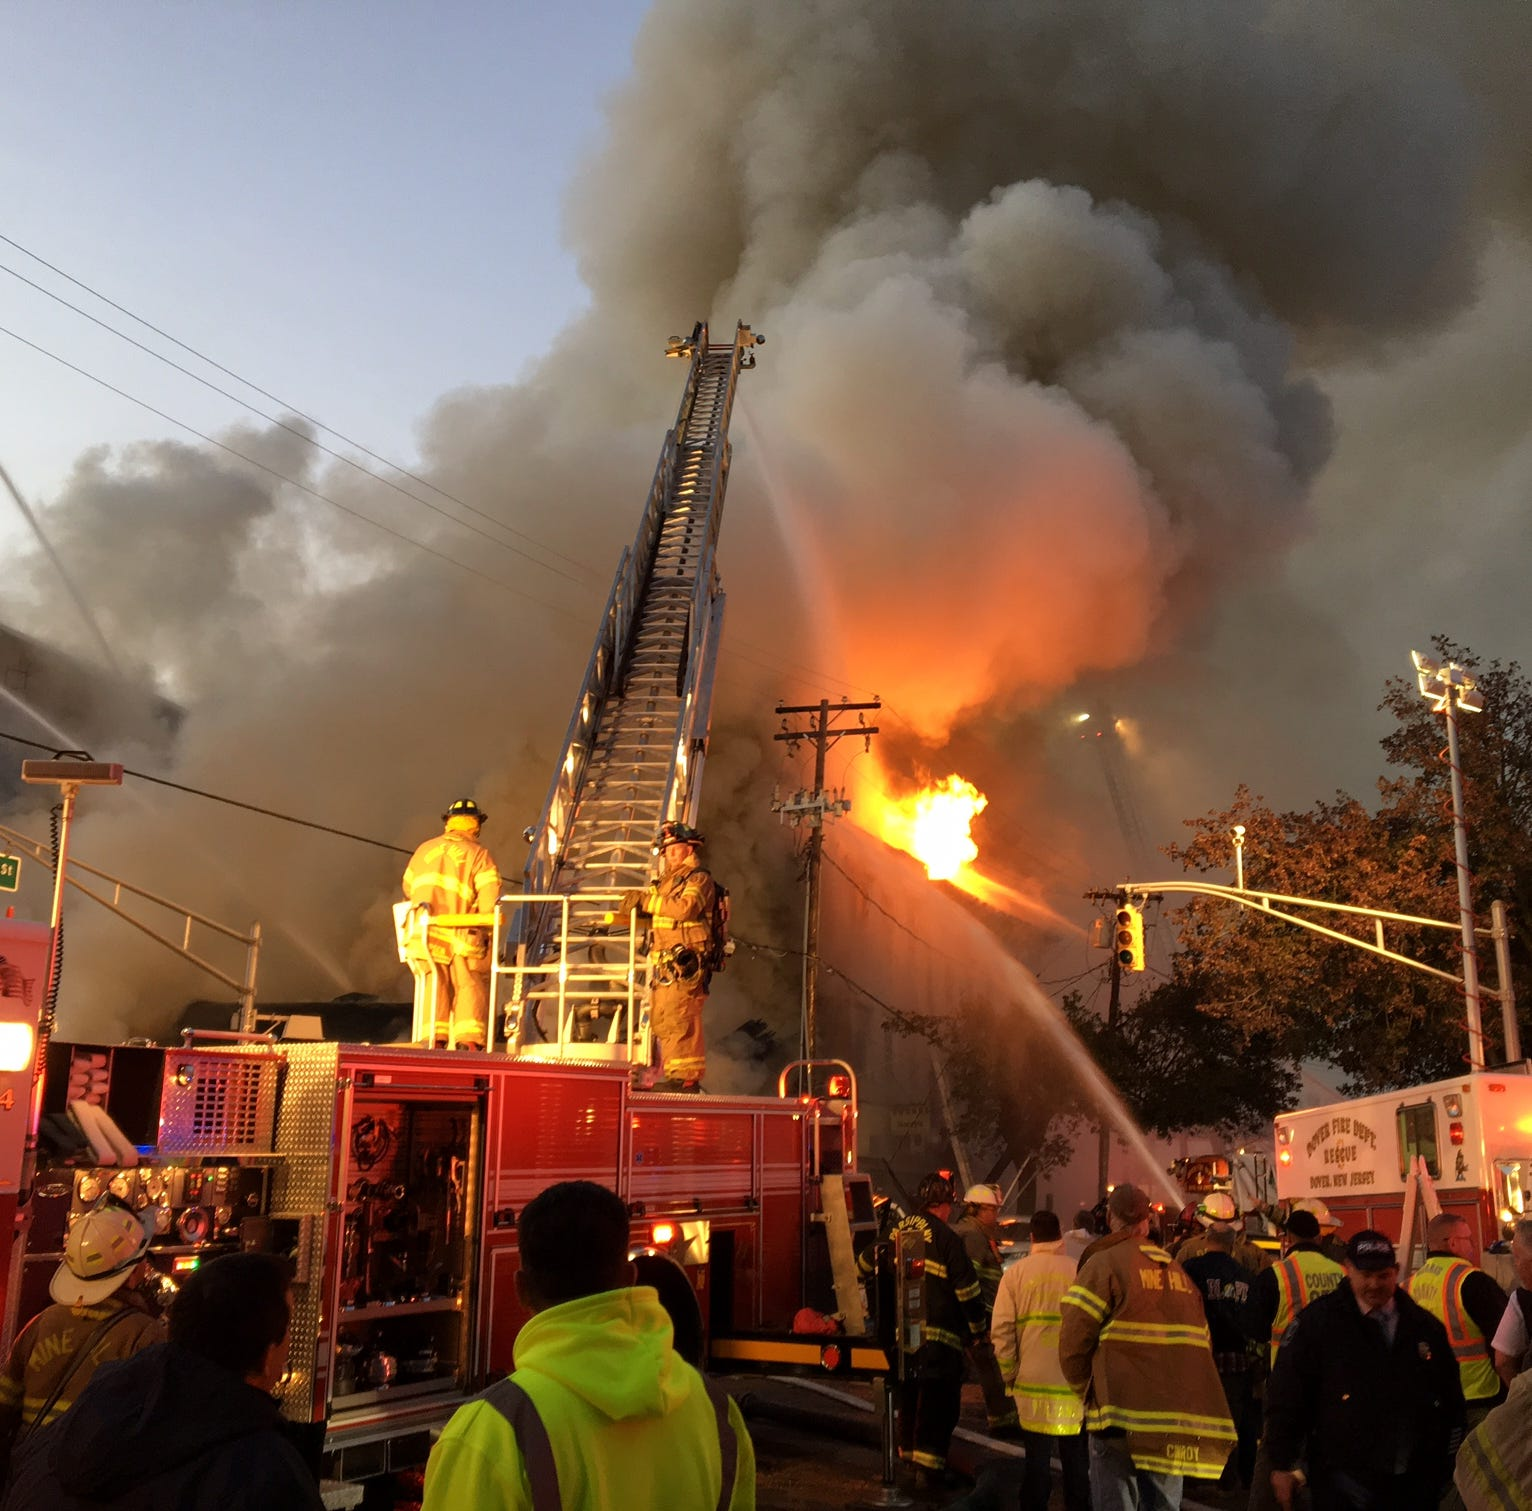 Buildings collapse in massive Dover fire; no injuries reported